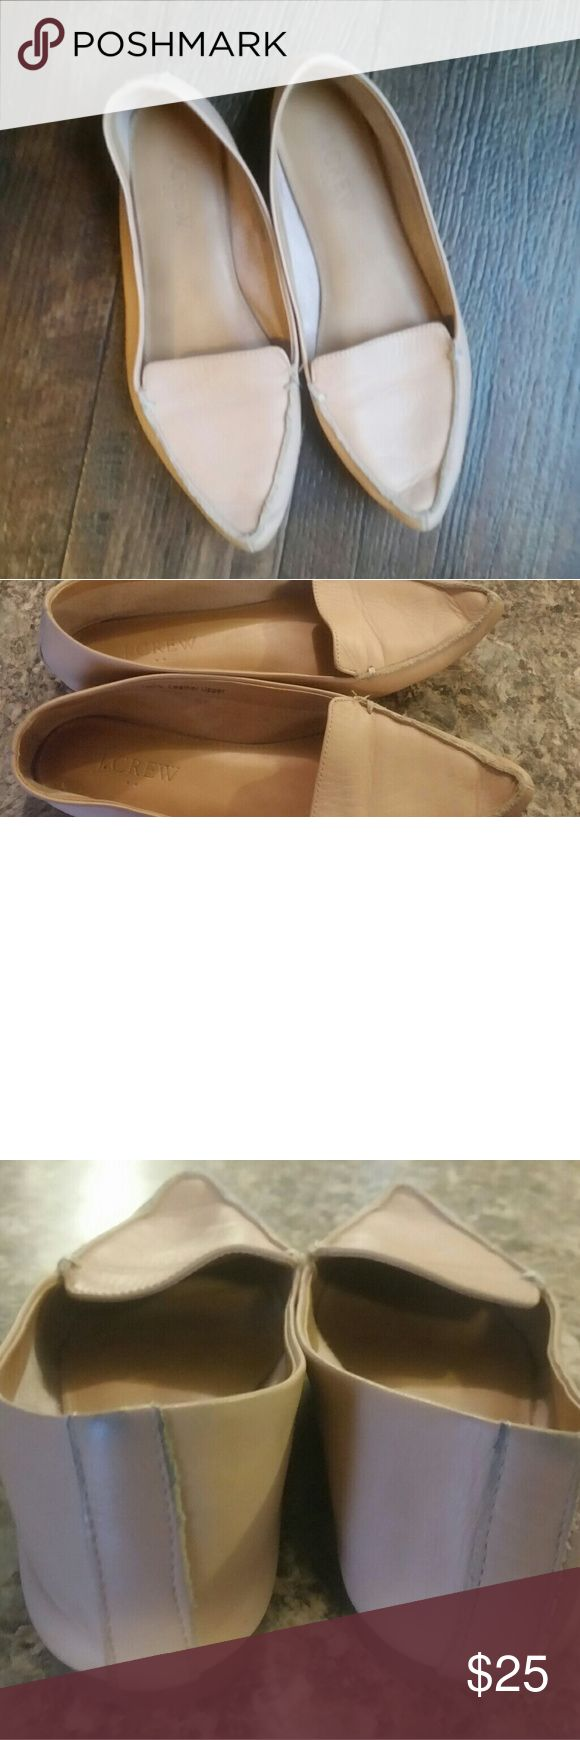 J Crew womens flat leather shoes Nude 7.5 J crew flats leather shoes  Soft leather   7.5 J. Crew Shoes Flats & Loafers